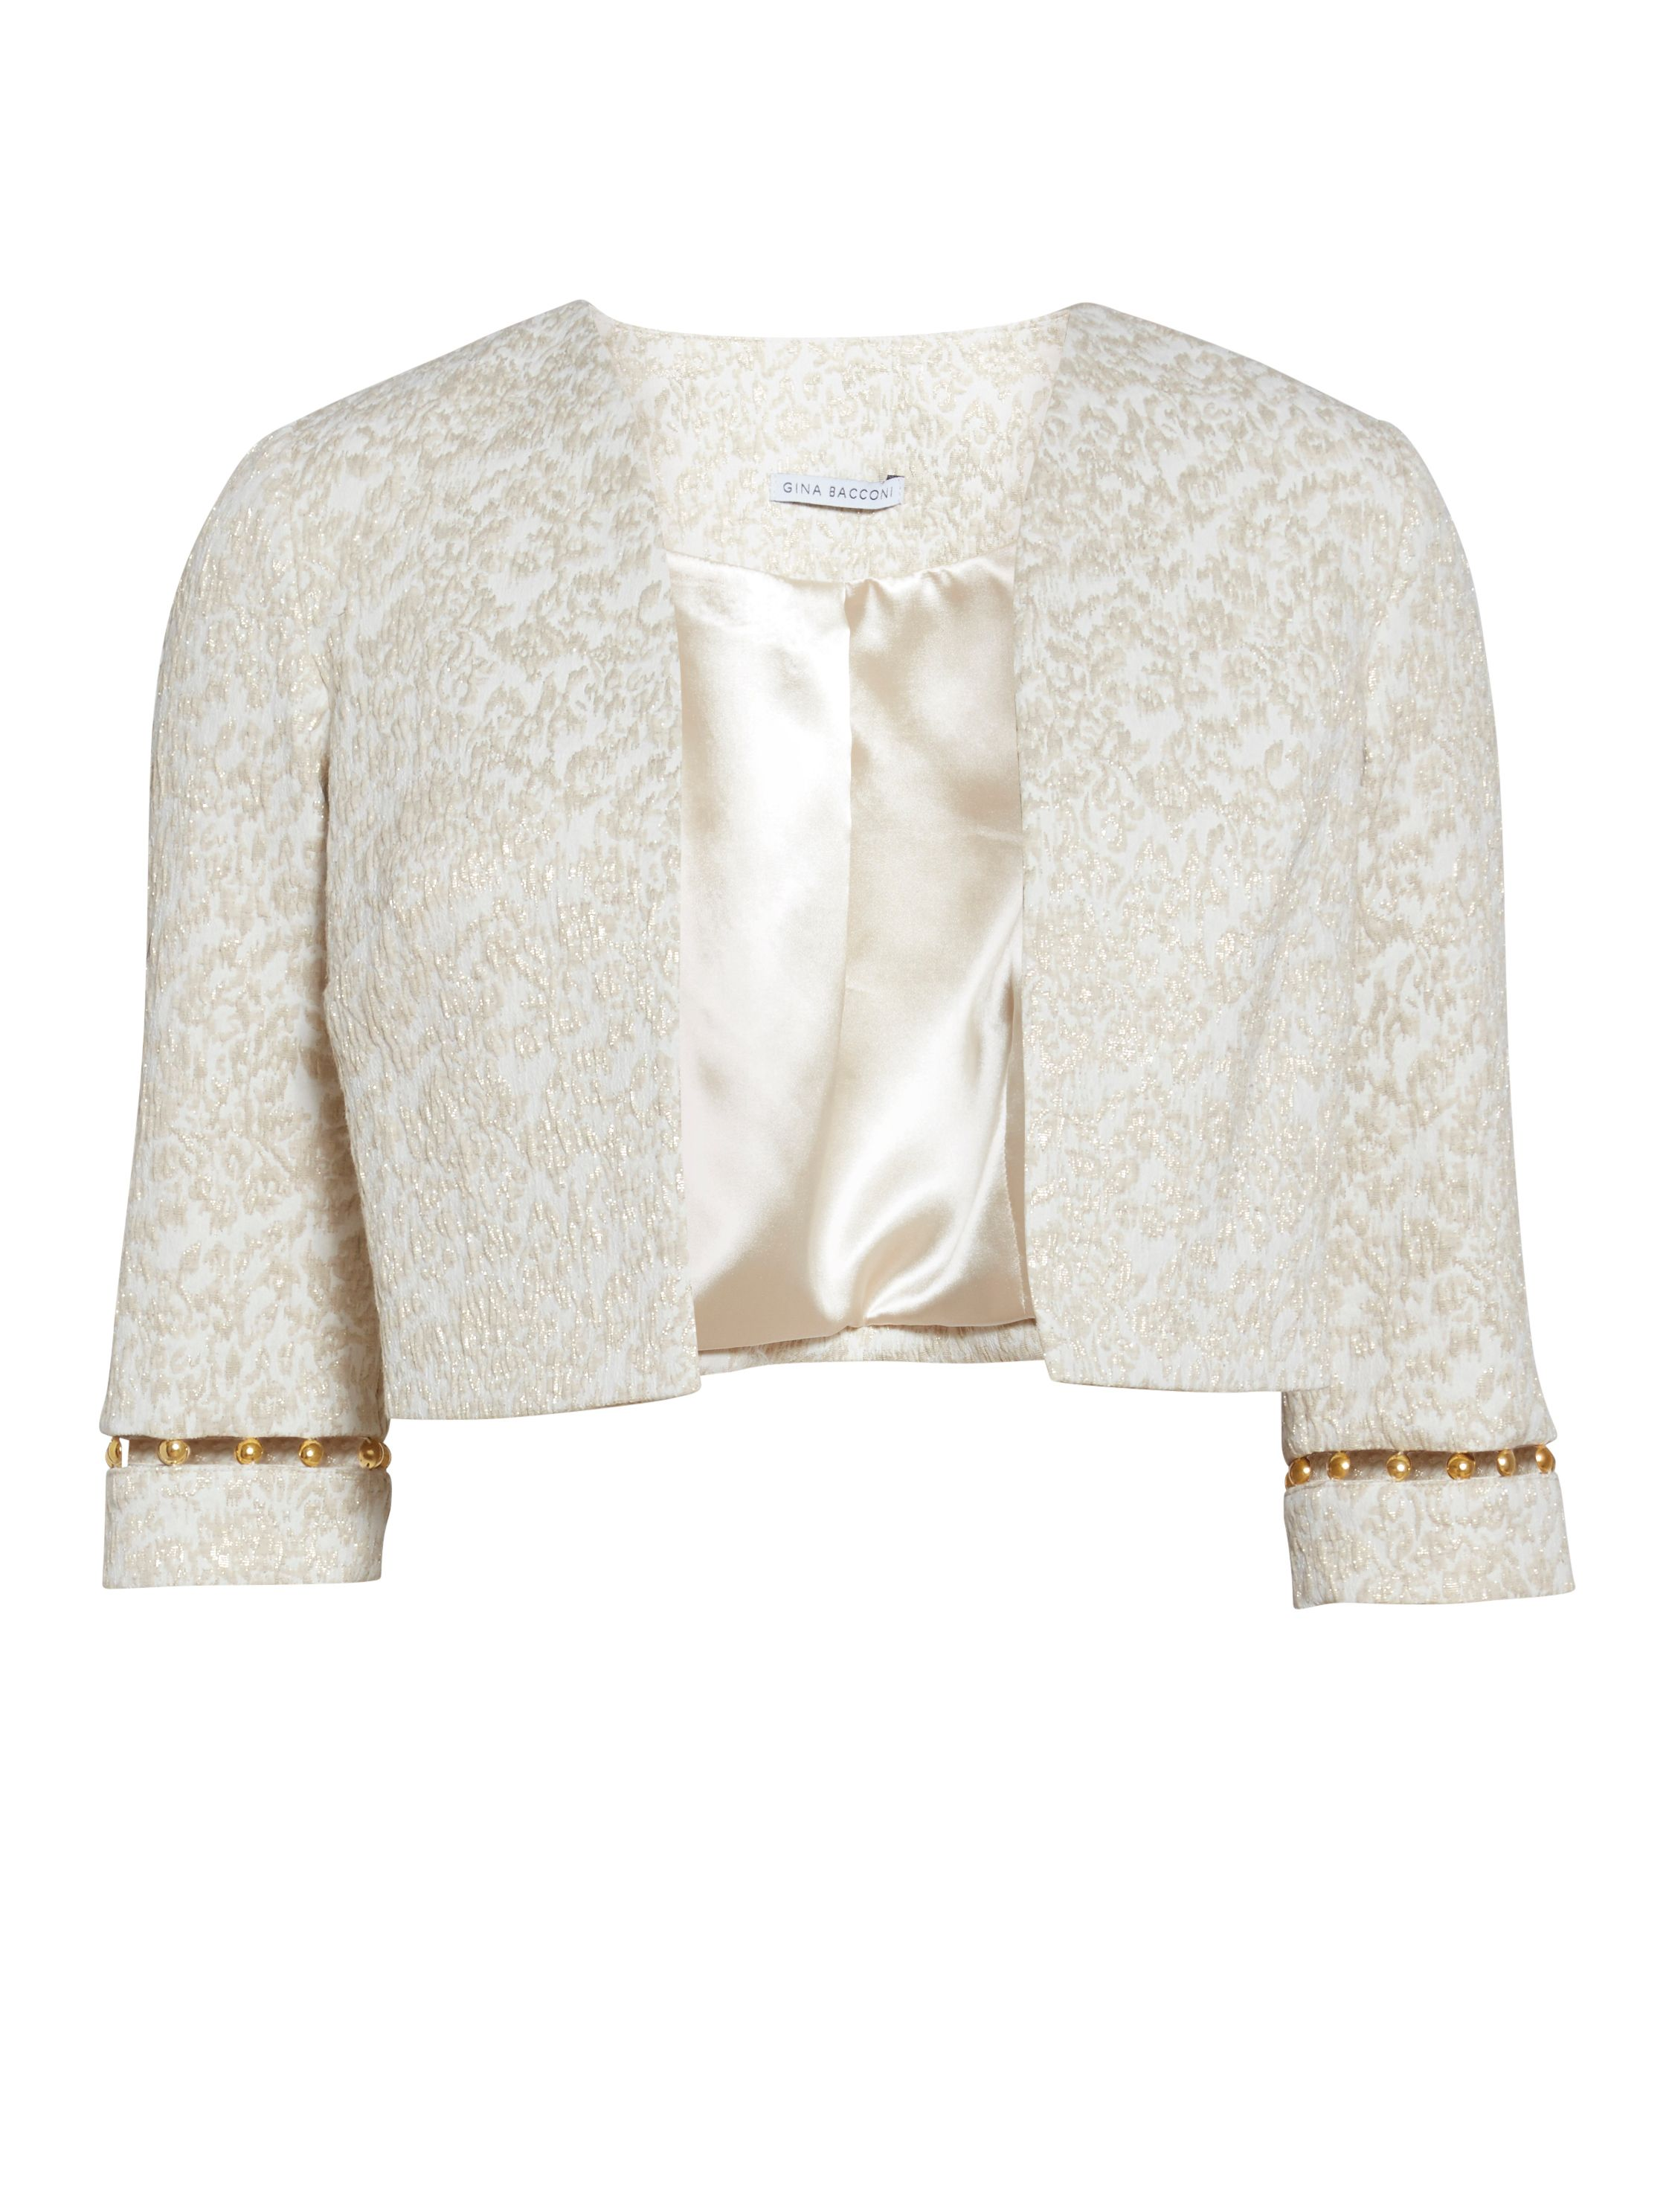 Gina Bacconi Cream gold jacquard jacket with trim, Gold